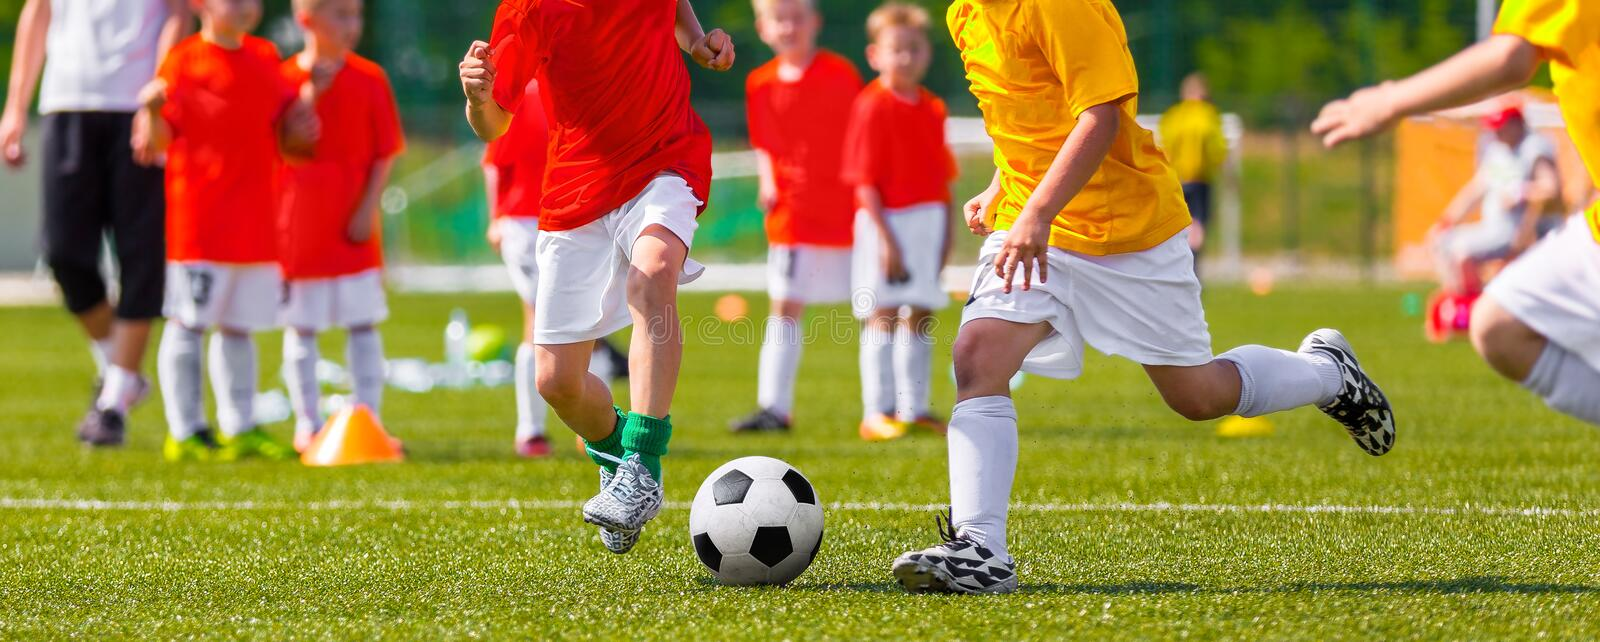 Football Match For Children. Training and Soccer School TournameNT. Football Match For Children. Training and Football Soccer School Tournament. Group of Boys royalty free stock photography